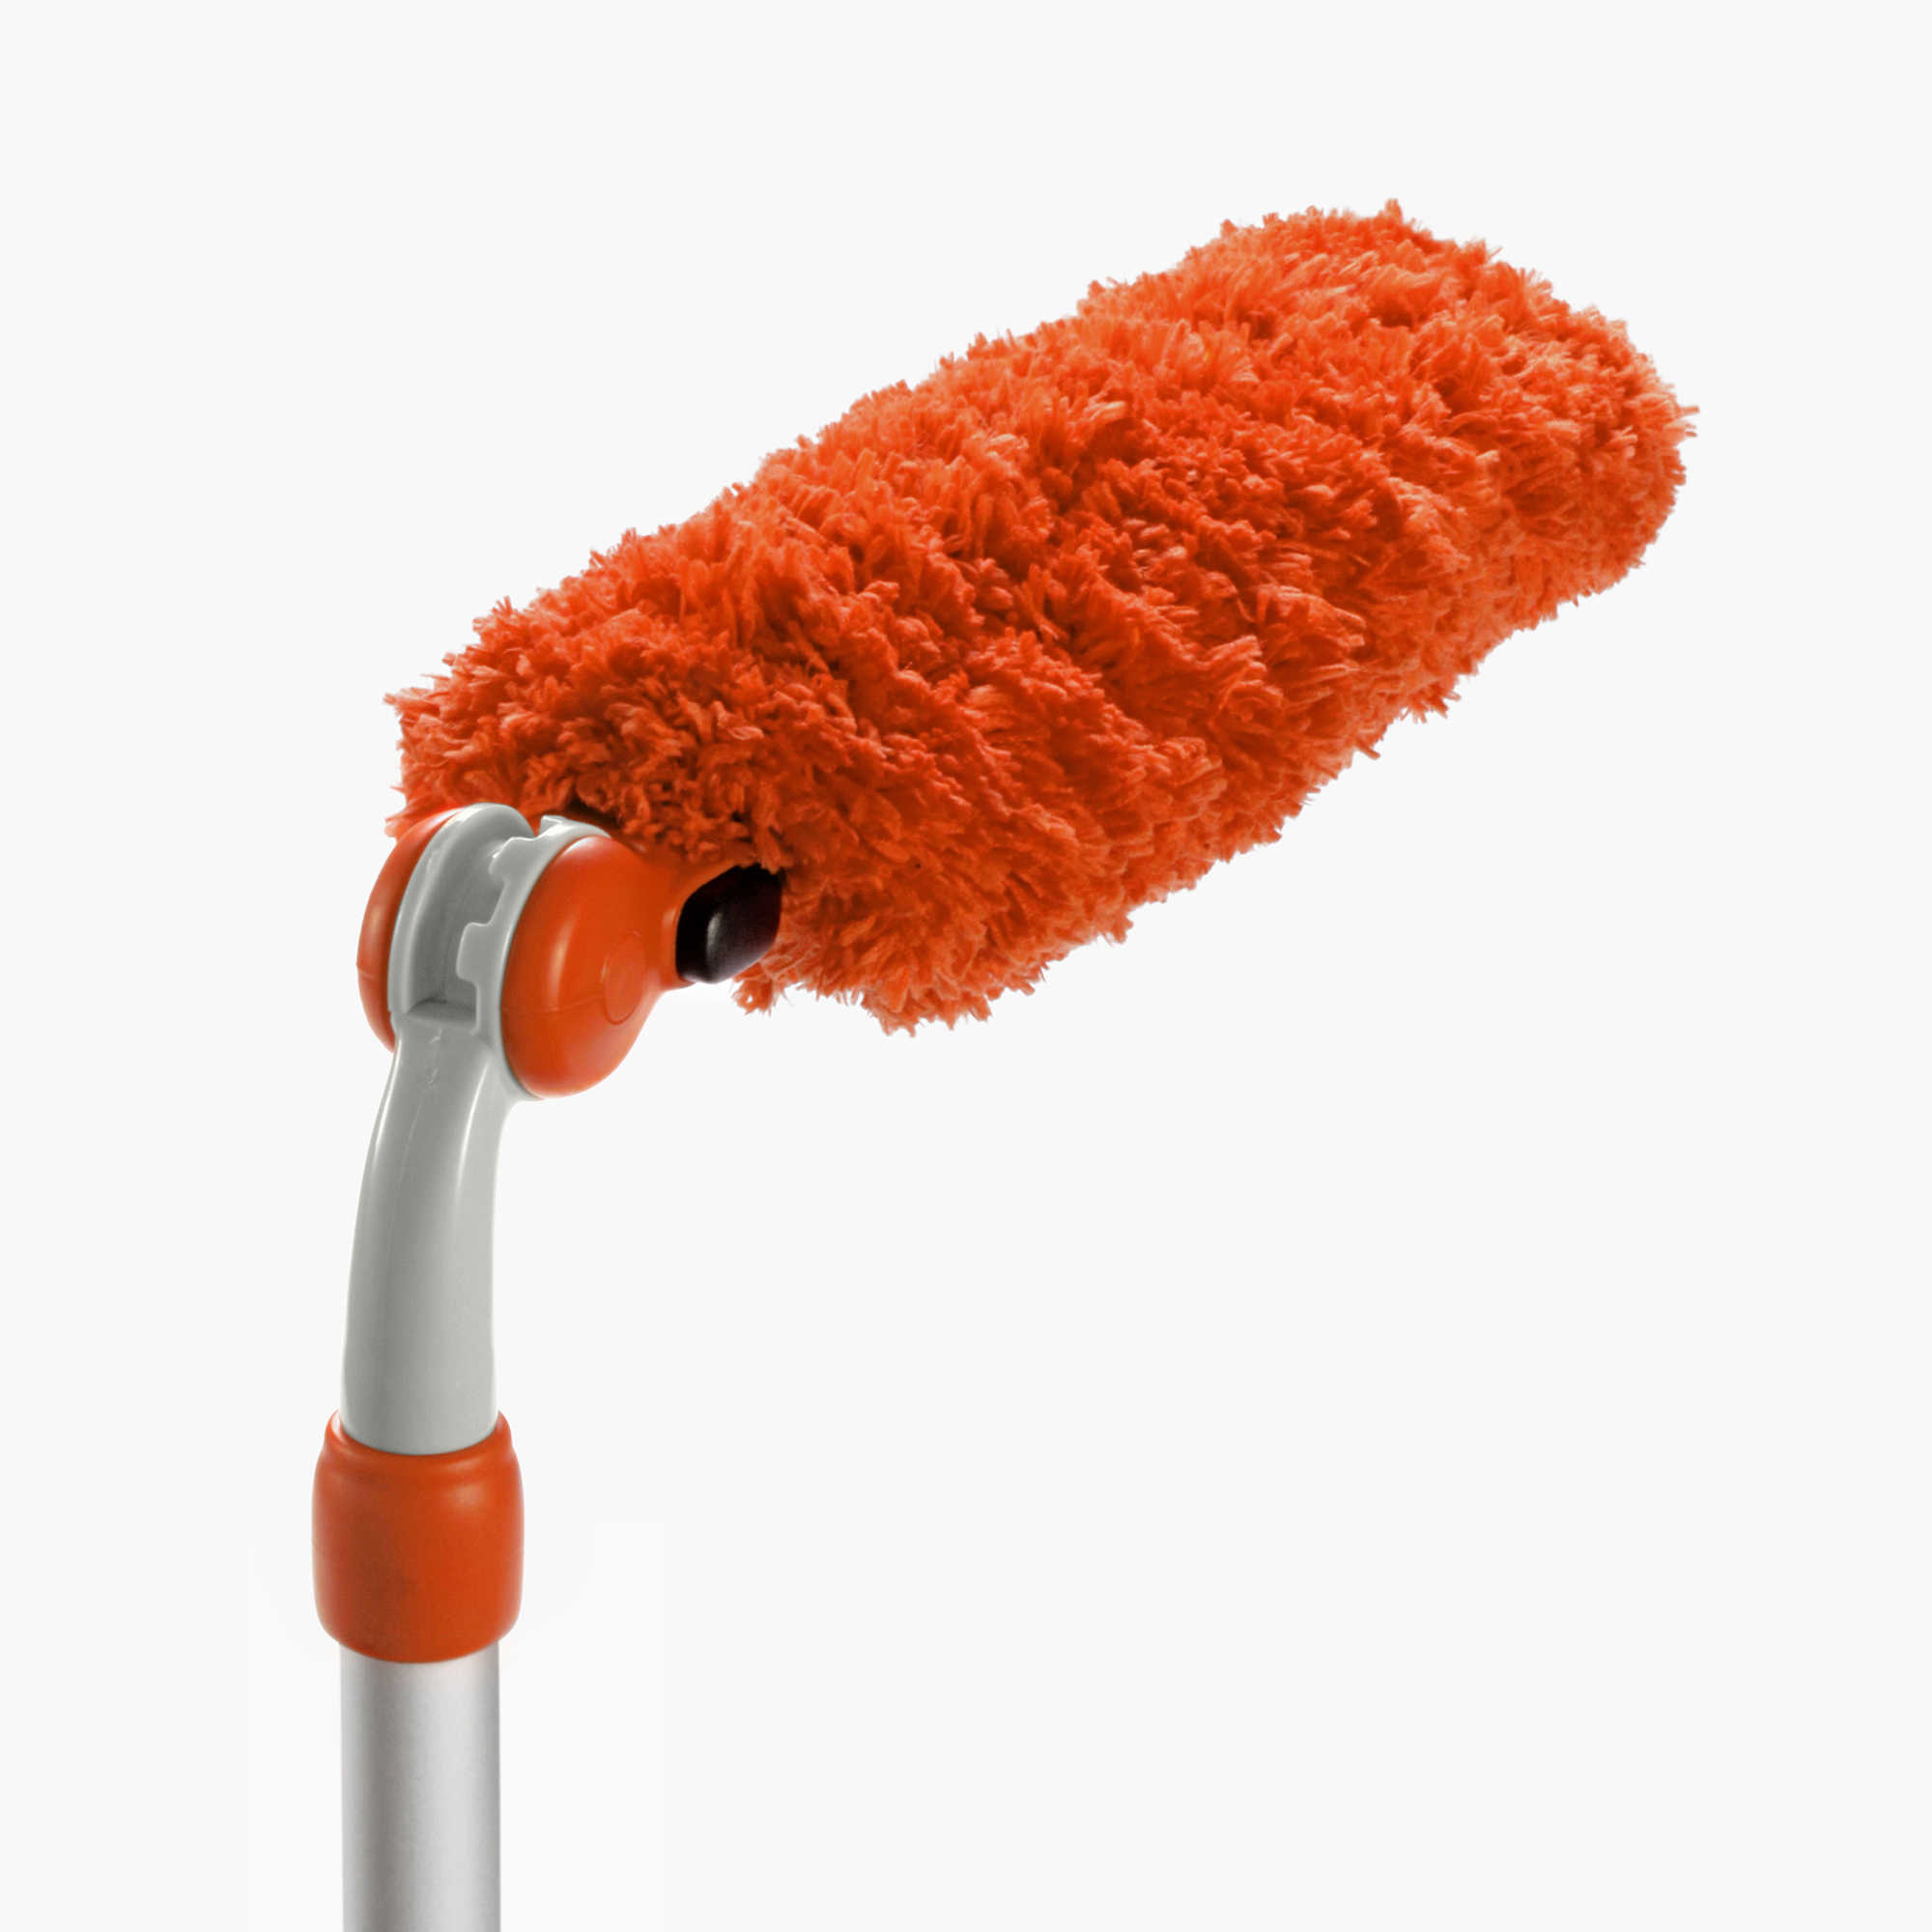 Floor Care Products  Brooms Mops  Dusters  Bed Bath  Beyond